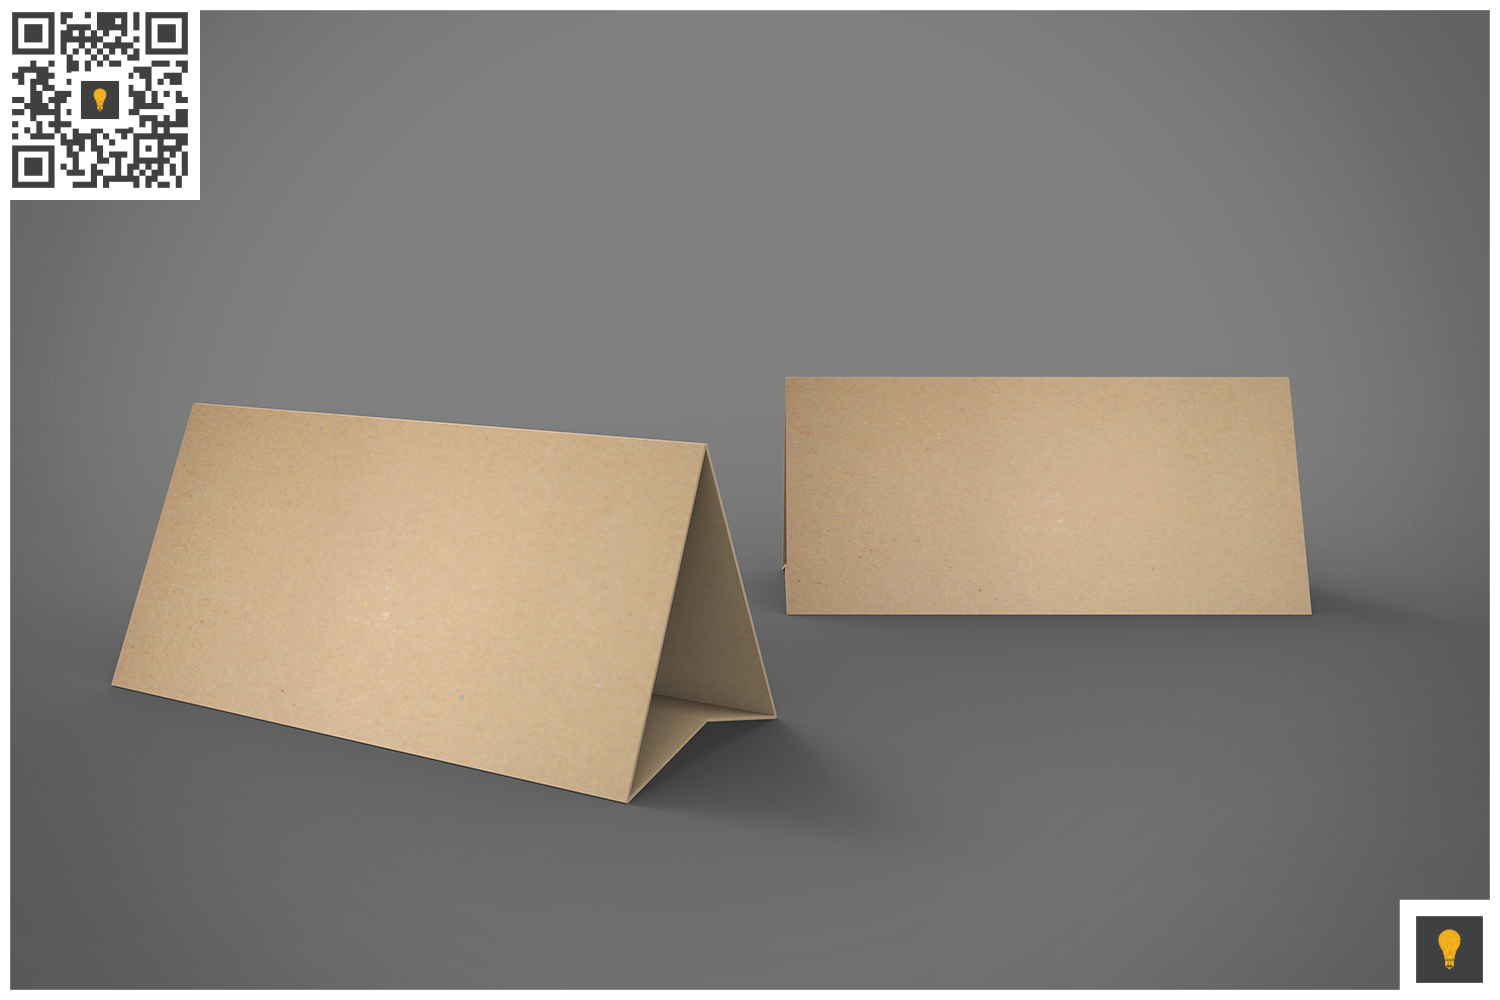 Table Tent 3D Render example image 11